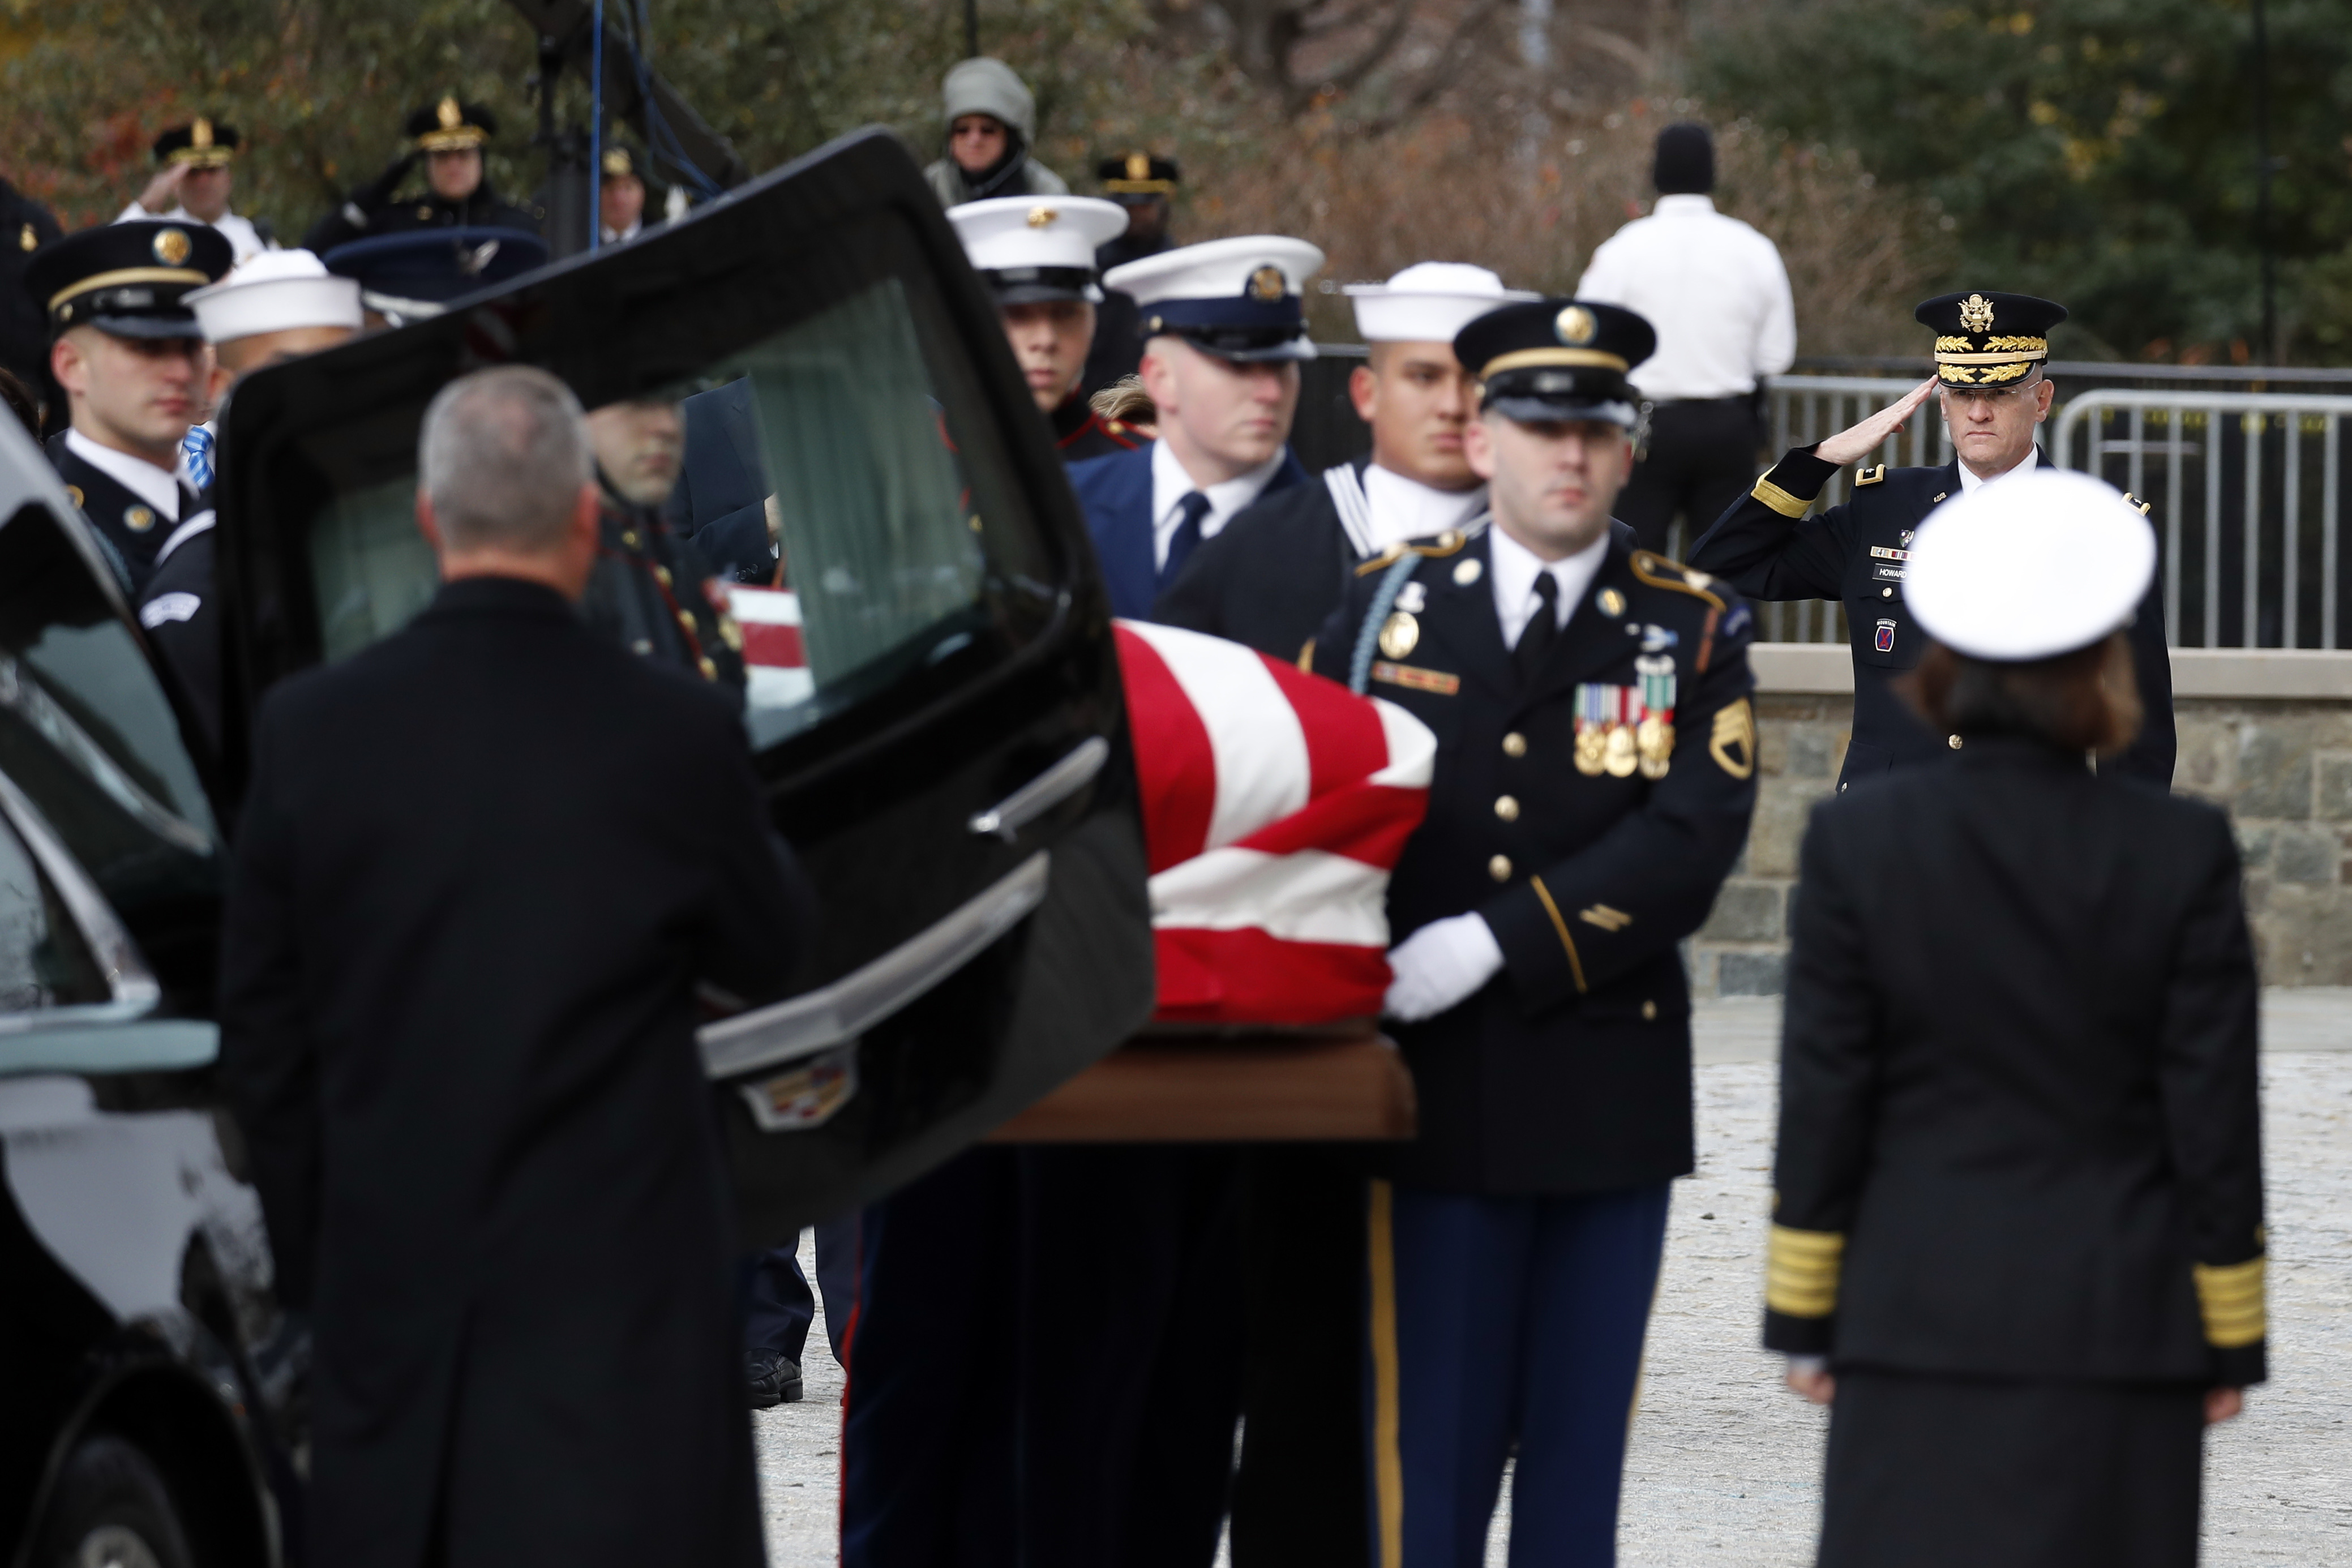 The flag-draped casket of former President George H.W. Bush is carried by a joint services military honor guard into a State Funeral at the National Cathedral, Wednesday, Dec. 5, 2018, in Washington. (AP Photo/Alex Brandon, Pool)